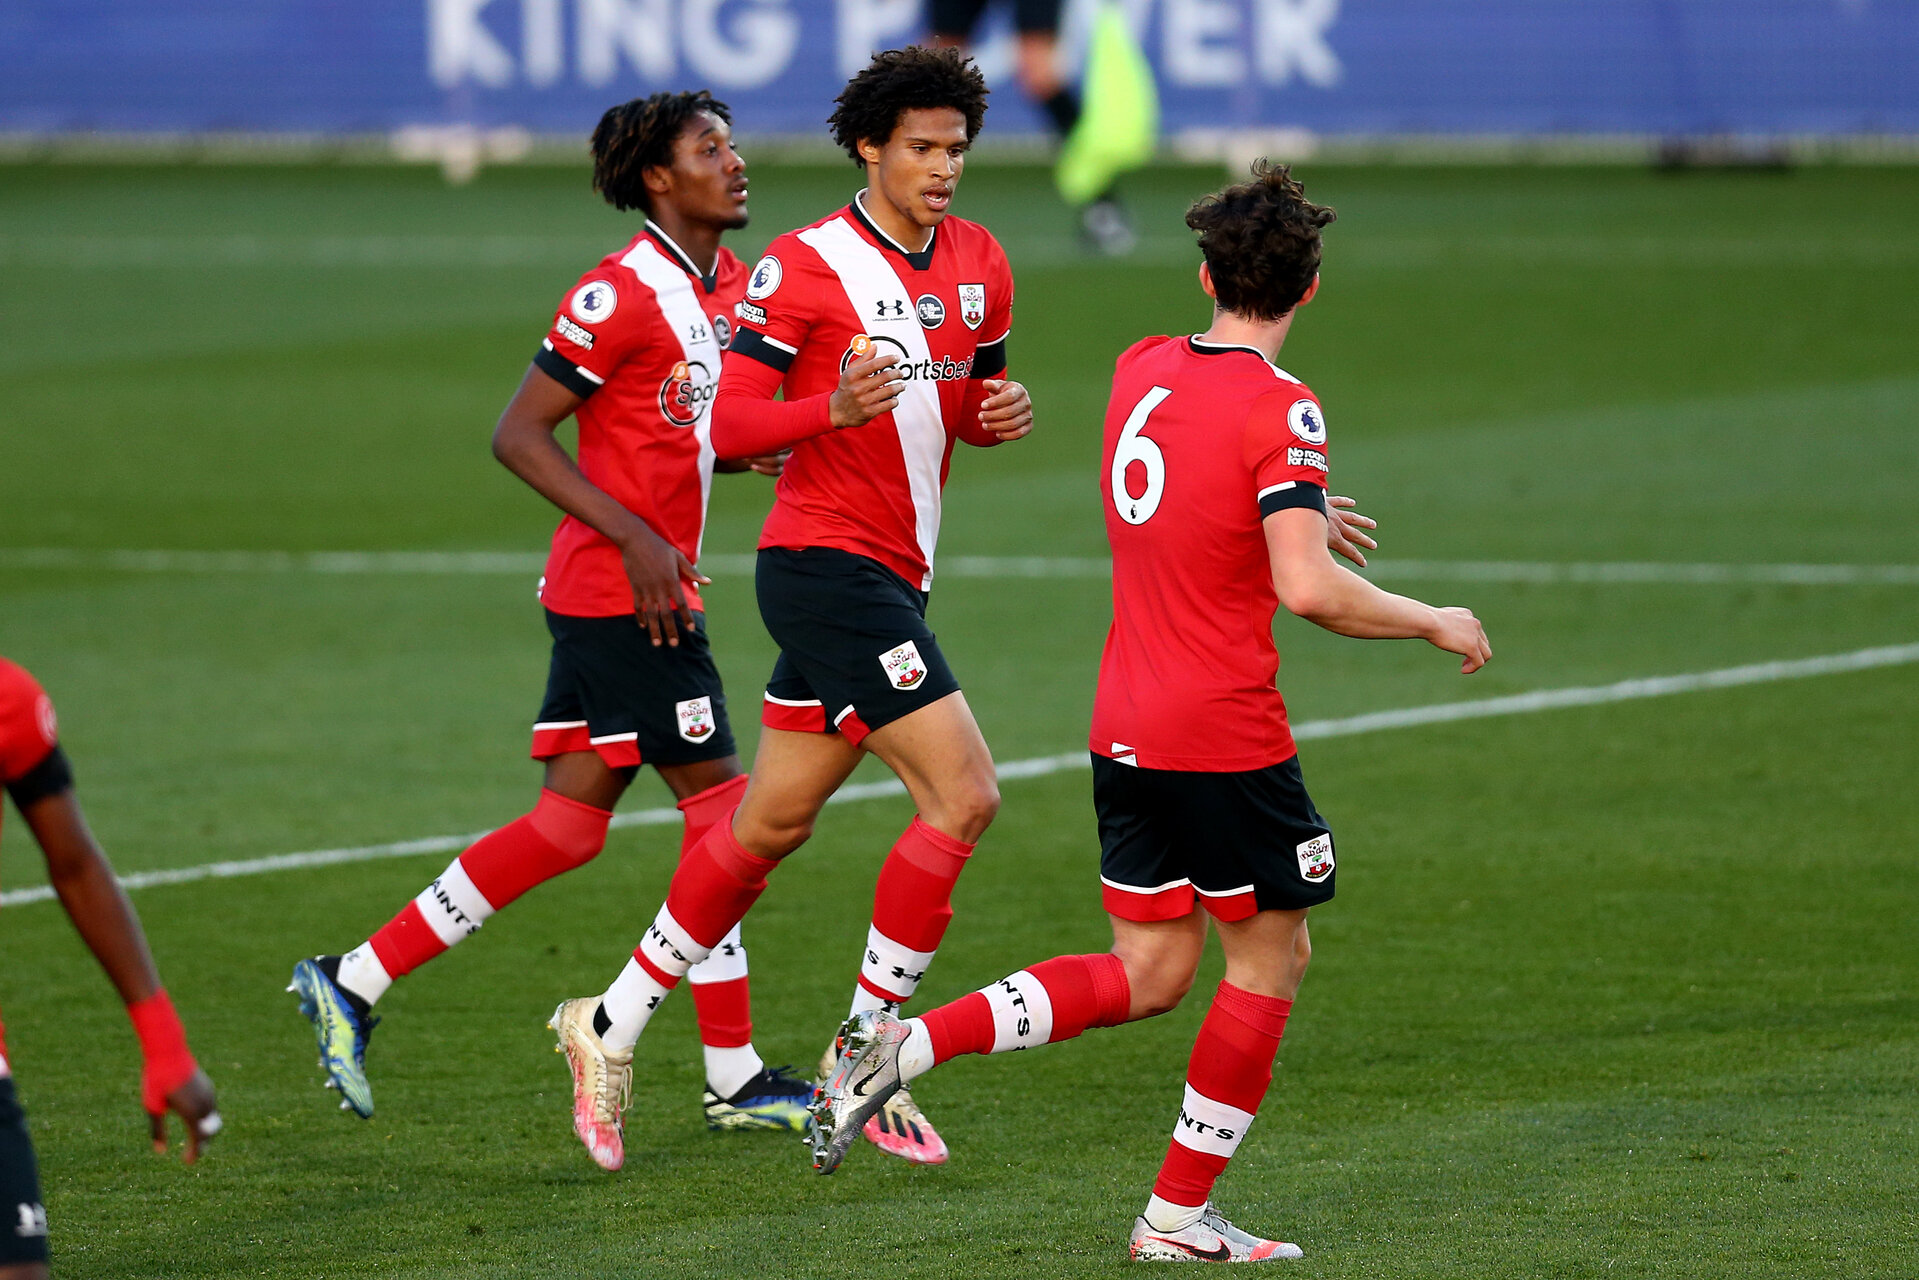 LEICESTER, ENGLAND - APRIL 19: Oludare Olufunwa of Southampton celebrates scoring with his team mated during the Premier League 2 match between Leicester City and Southampton B Team at the Leicester City Training Ground on April 19, 2021 in Leicester, England.  (Photo by Isabelle Field/Southampton FC via Getty Images)